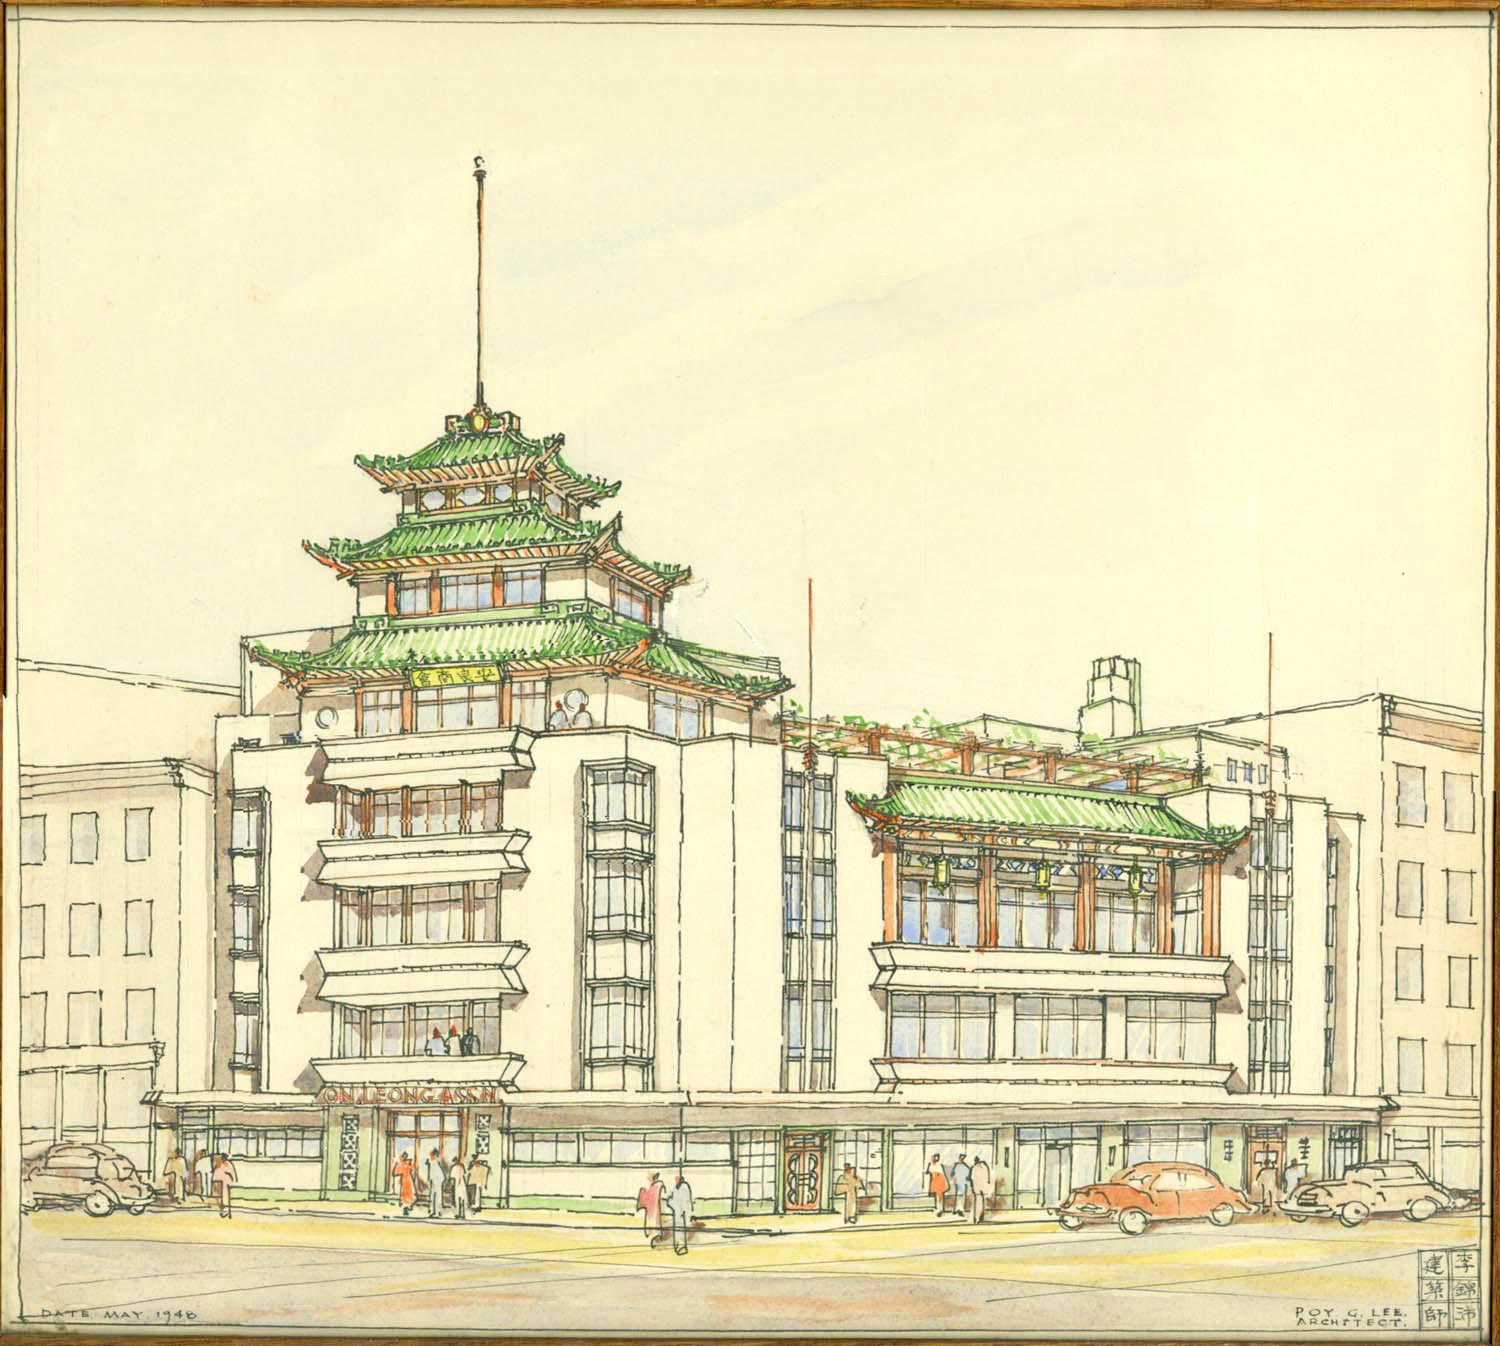 Poy Gum Lee, On Leong Tong, 83-85 Mott Street. Presentation Drawing., 1948, Ink and watercolor on paper, Courtesy of the Poy Gum Lee Archive